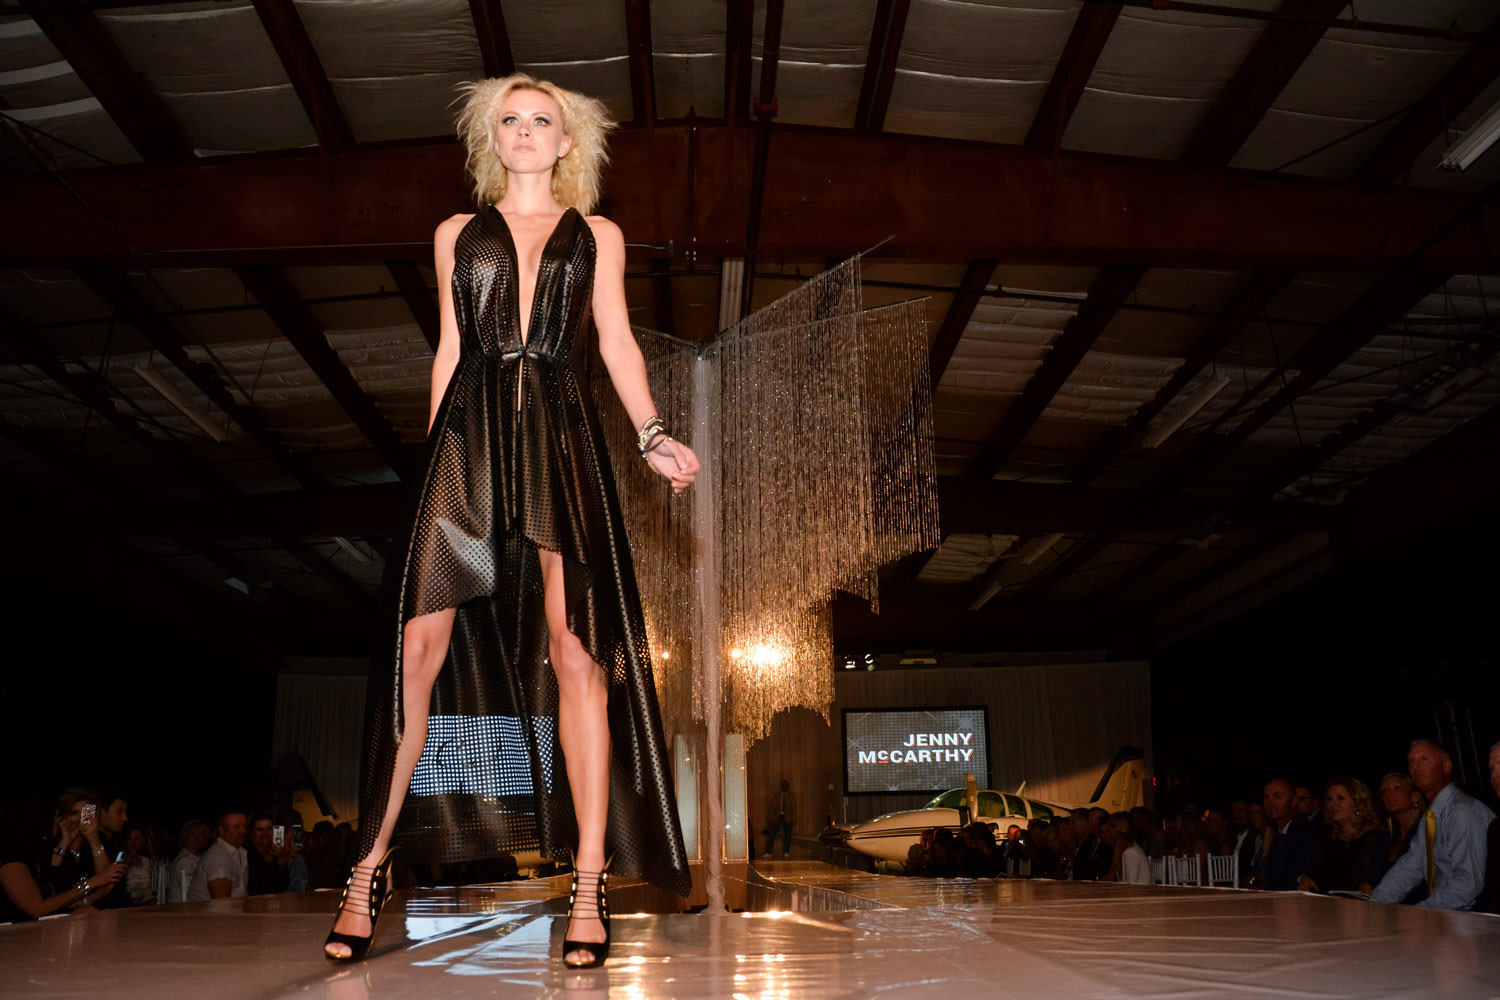 event-photography-gala-ruthie-hauge-fashion-show-dupage-airport-geneva-st-charles-jenny-mccarthy-donnie-wahlberg-31.jpg